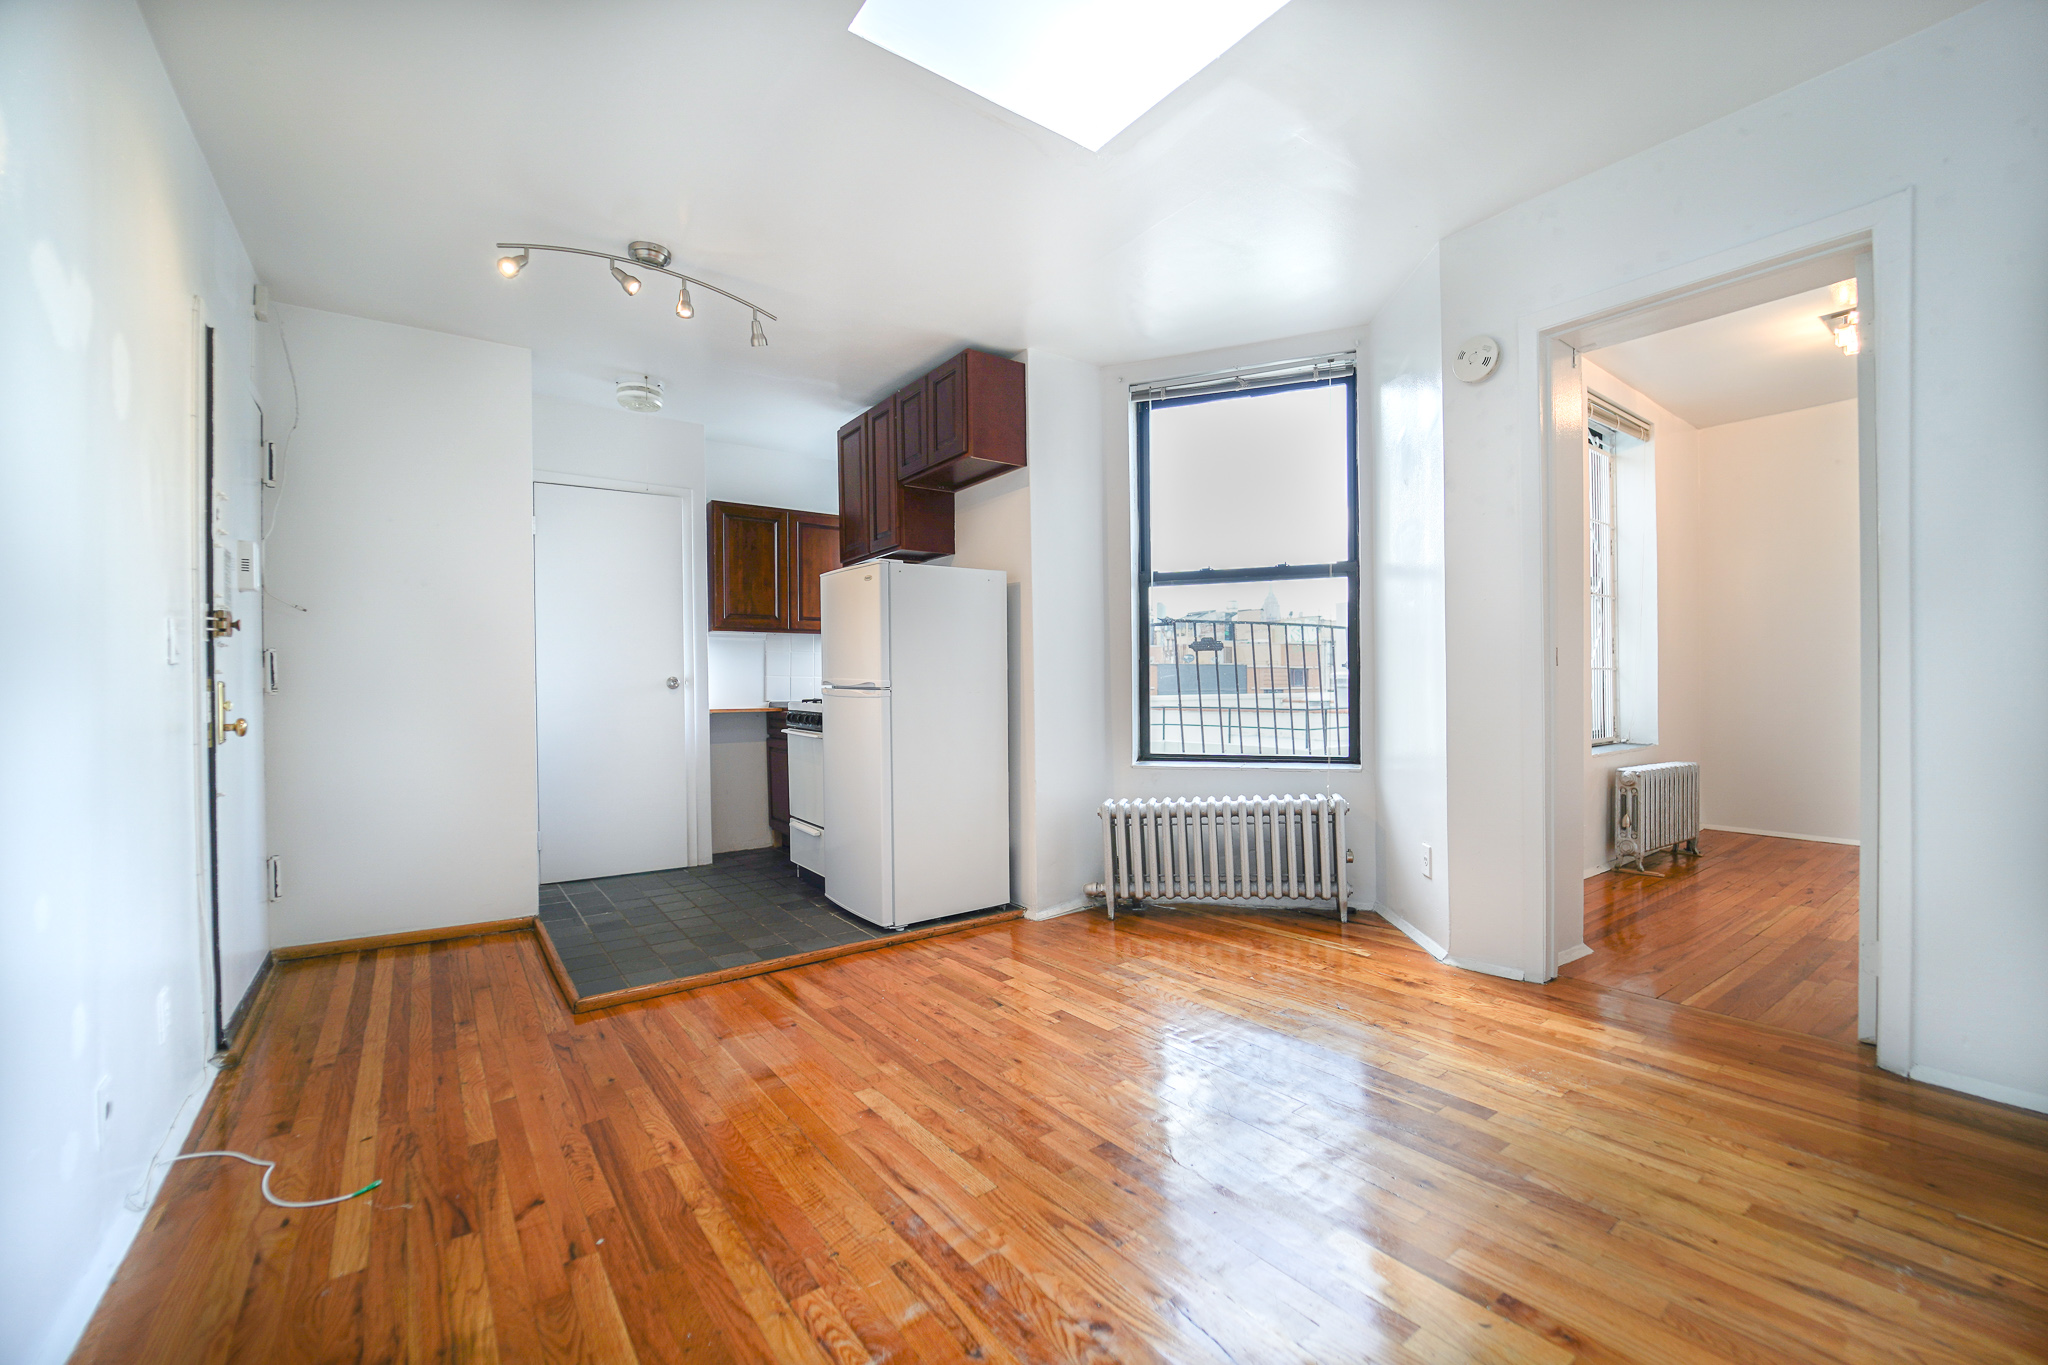 262 E 2 Street #6E - Super Bright One Bedroom in East Village!The unit features open kitchen, beautiful skylight, spacious bedroom with closet as well as windowed bathroom. Located on the top floor of a walk up building. Close to public transportation, shops and cafes! Rent: $2,250 /monthTerms: 12 - 12 MonthsAvailable: Immediate